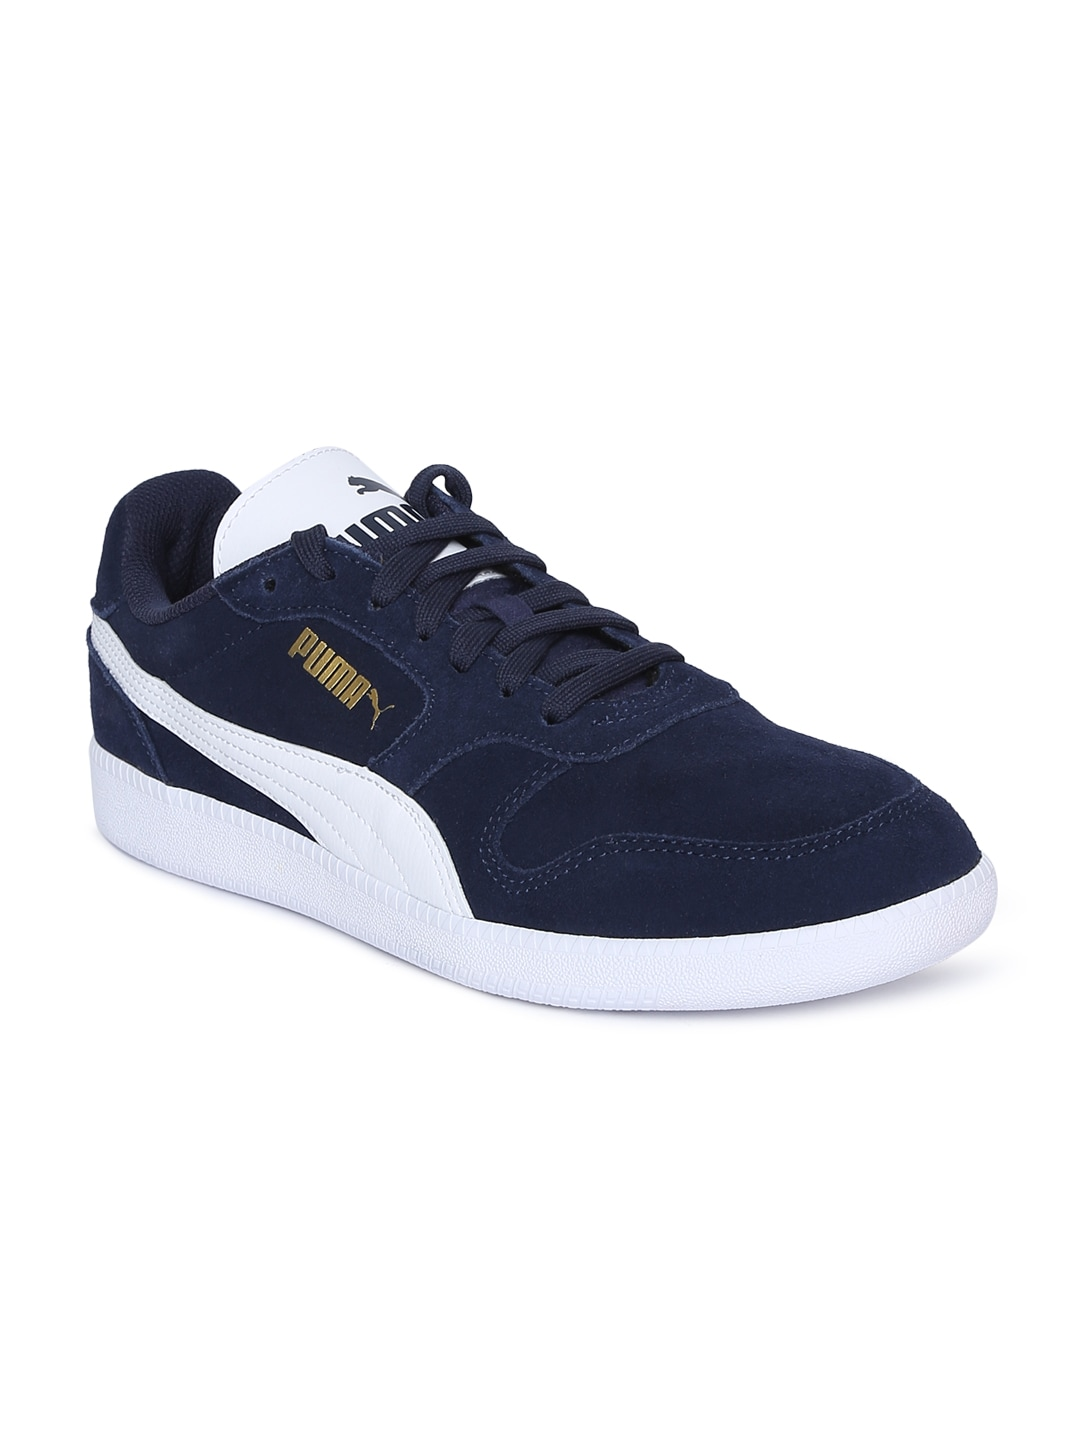 2a5ebe25670 Puma Suede Shoes - Buy Puma Suede Shoes online in India